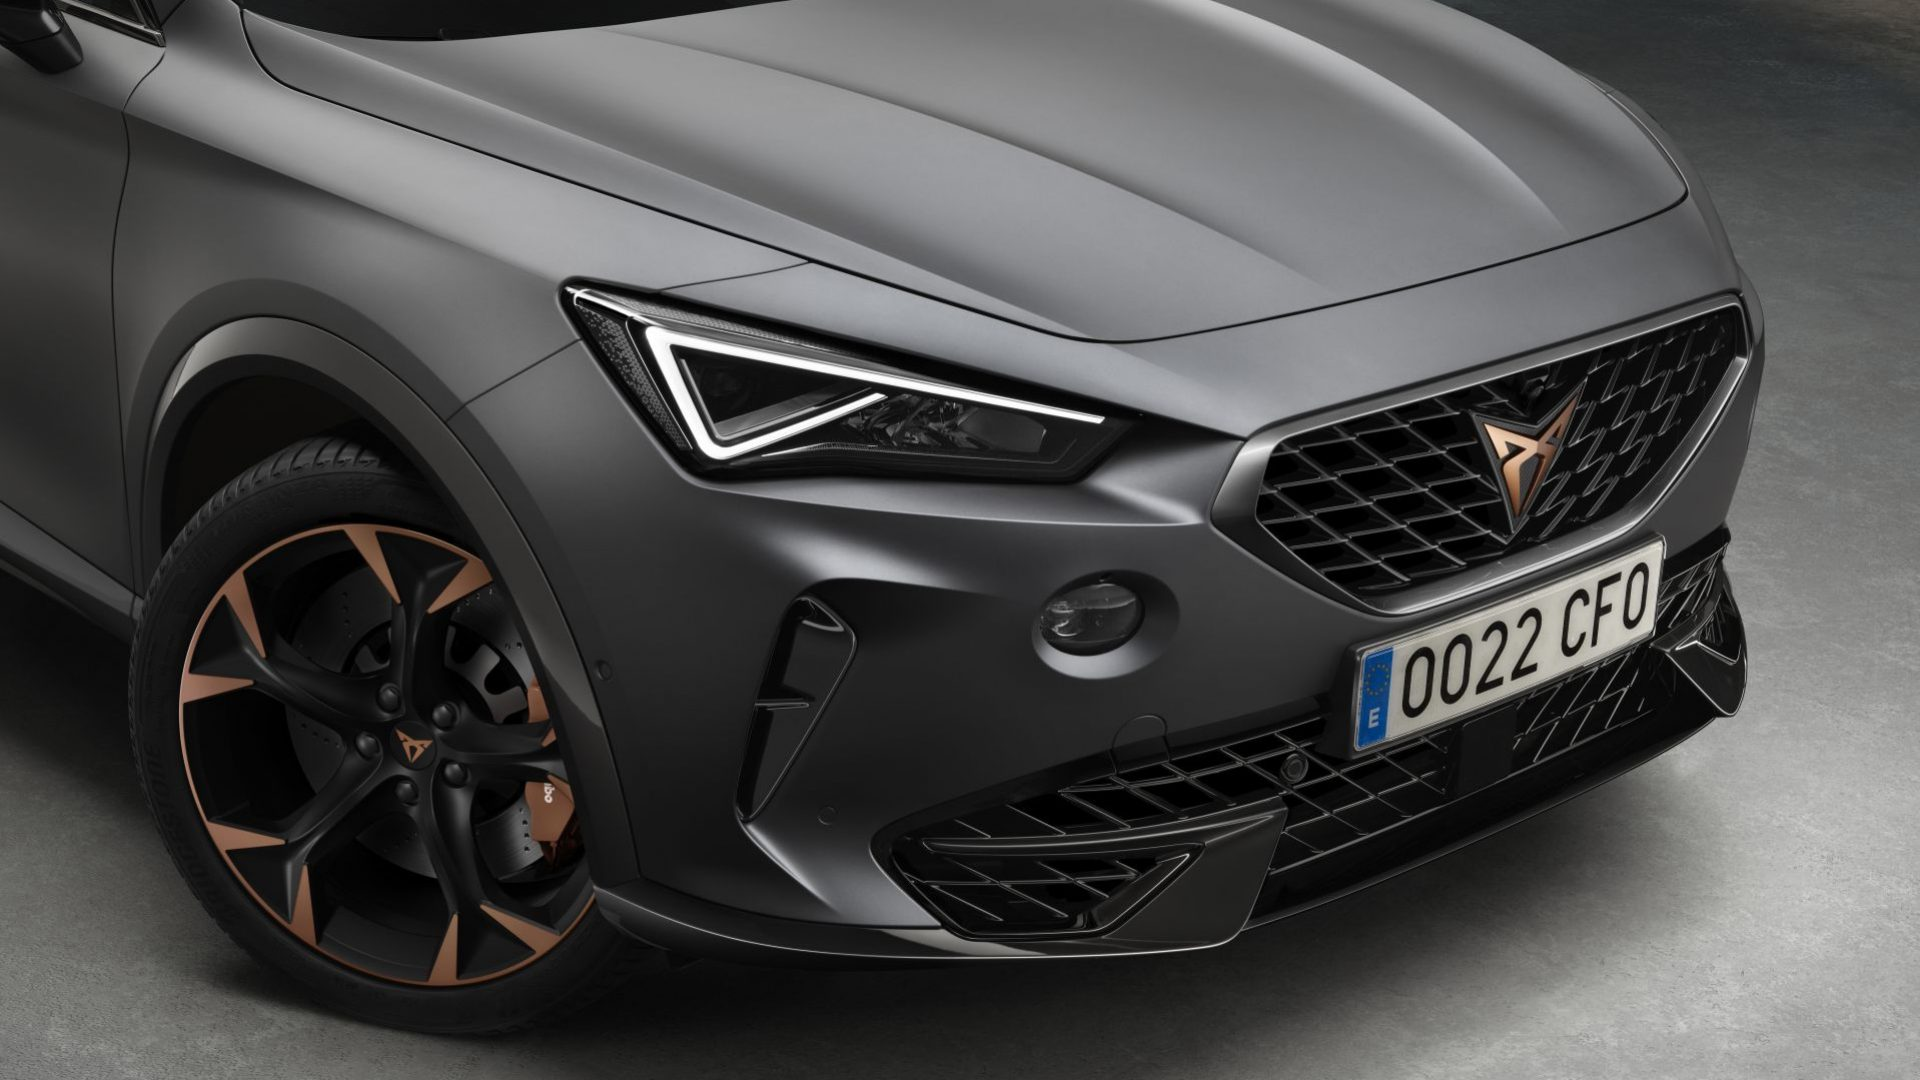 Covers-come-off-the-CUPRA-Formentor_10_HQ